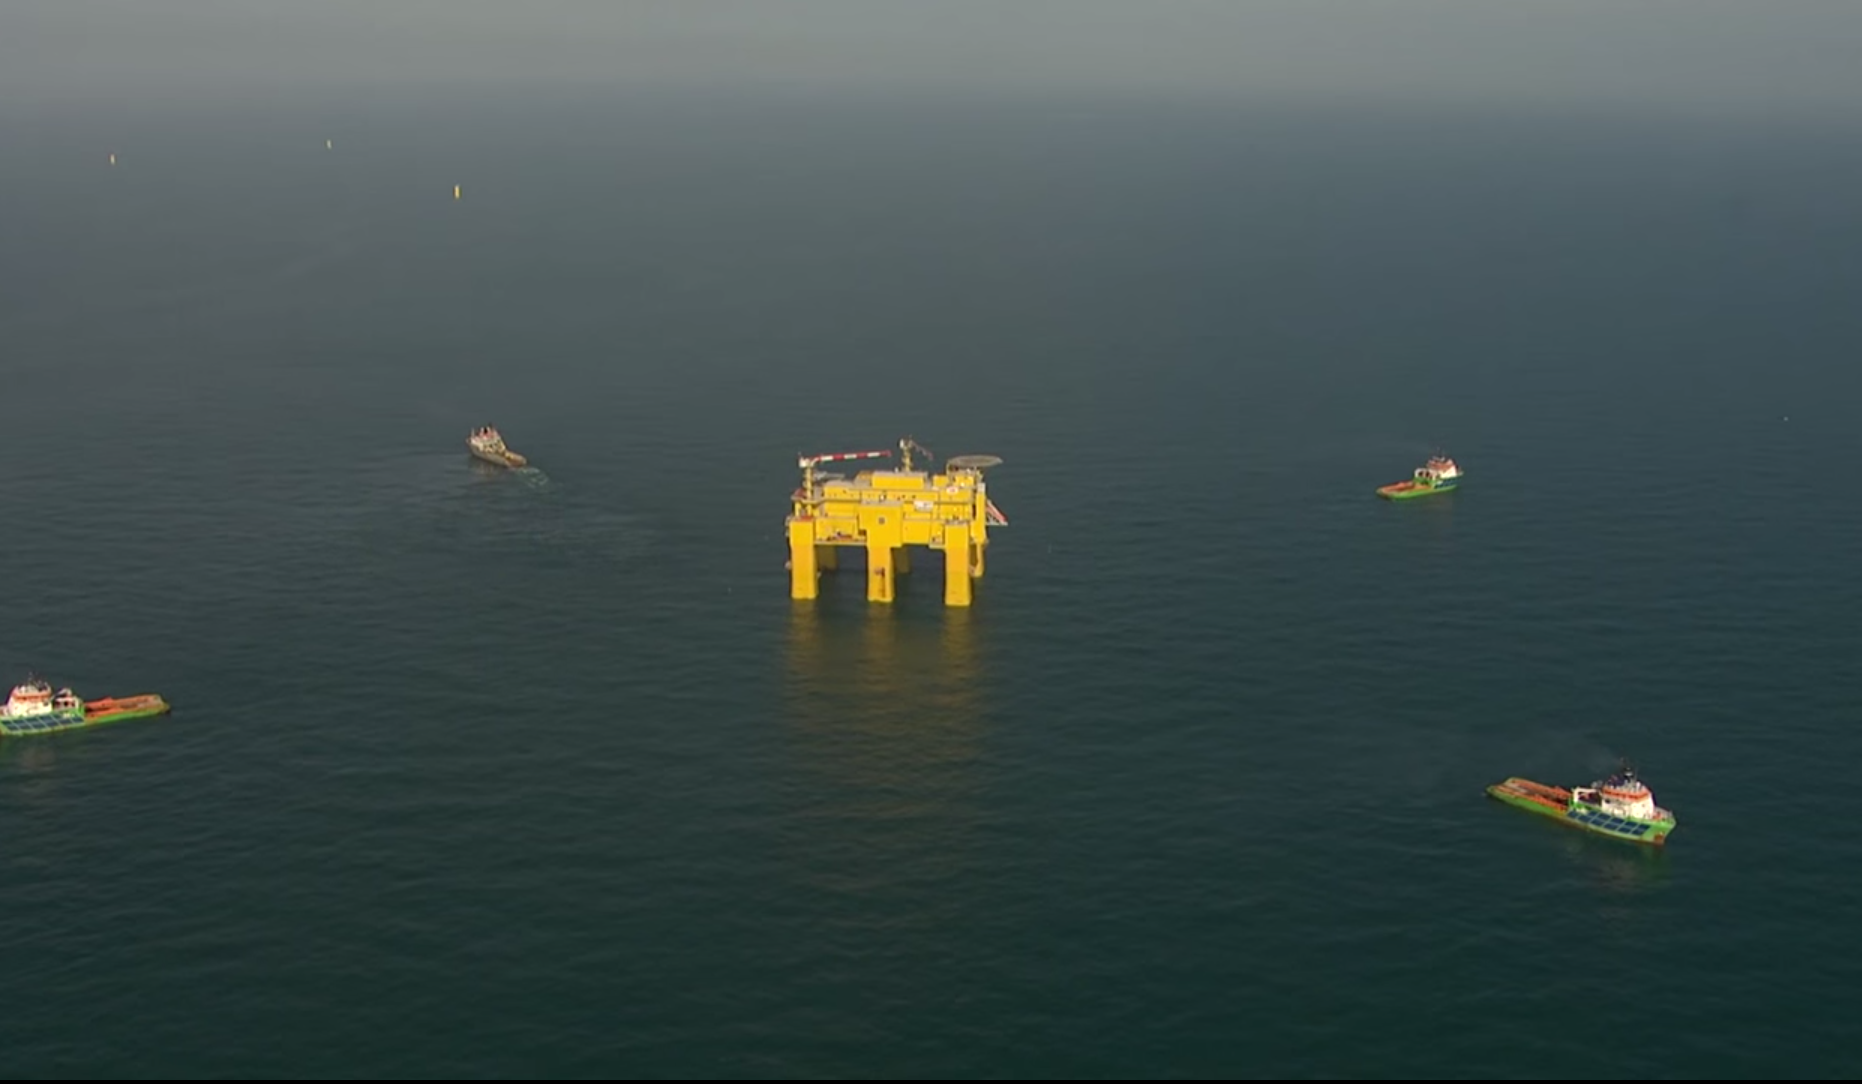 ABB has installed the world's largest offshore converter